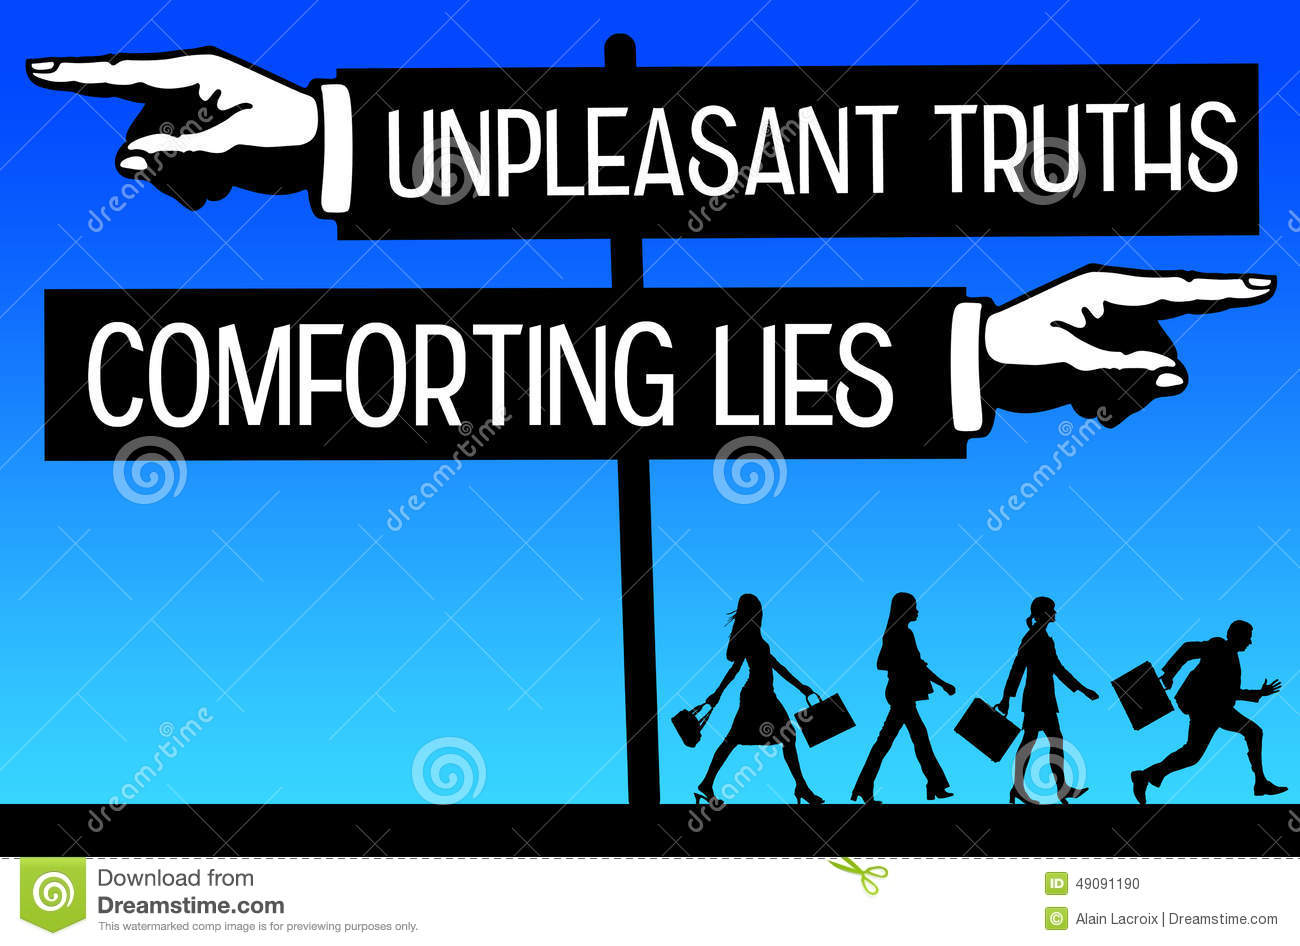 truth or lie Truth or lie 7 people will be selected to tell 7 minute tales but which are true and which are fabulous fabrication.